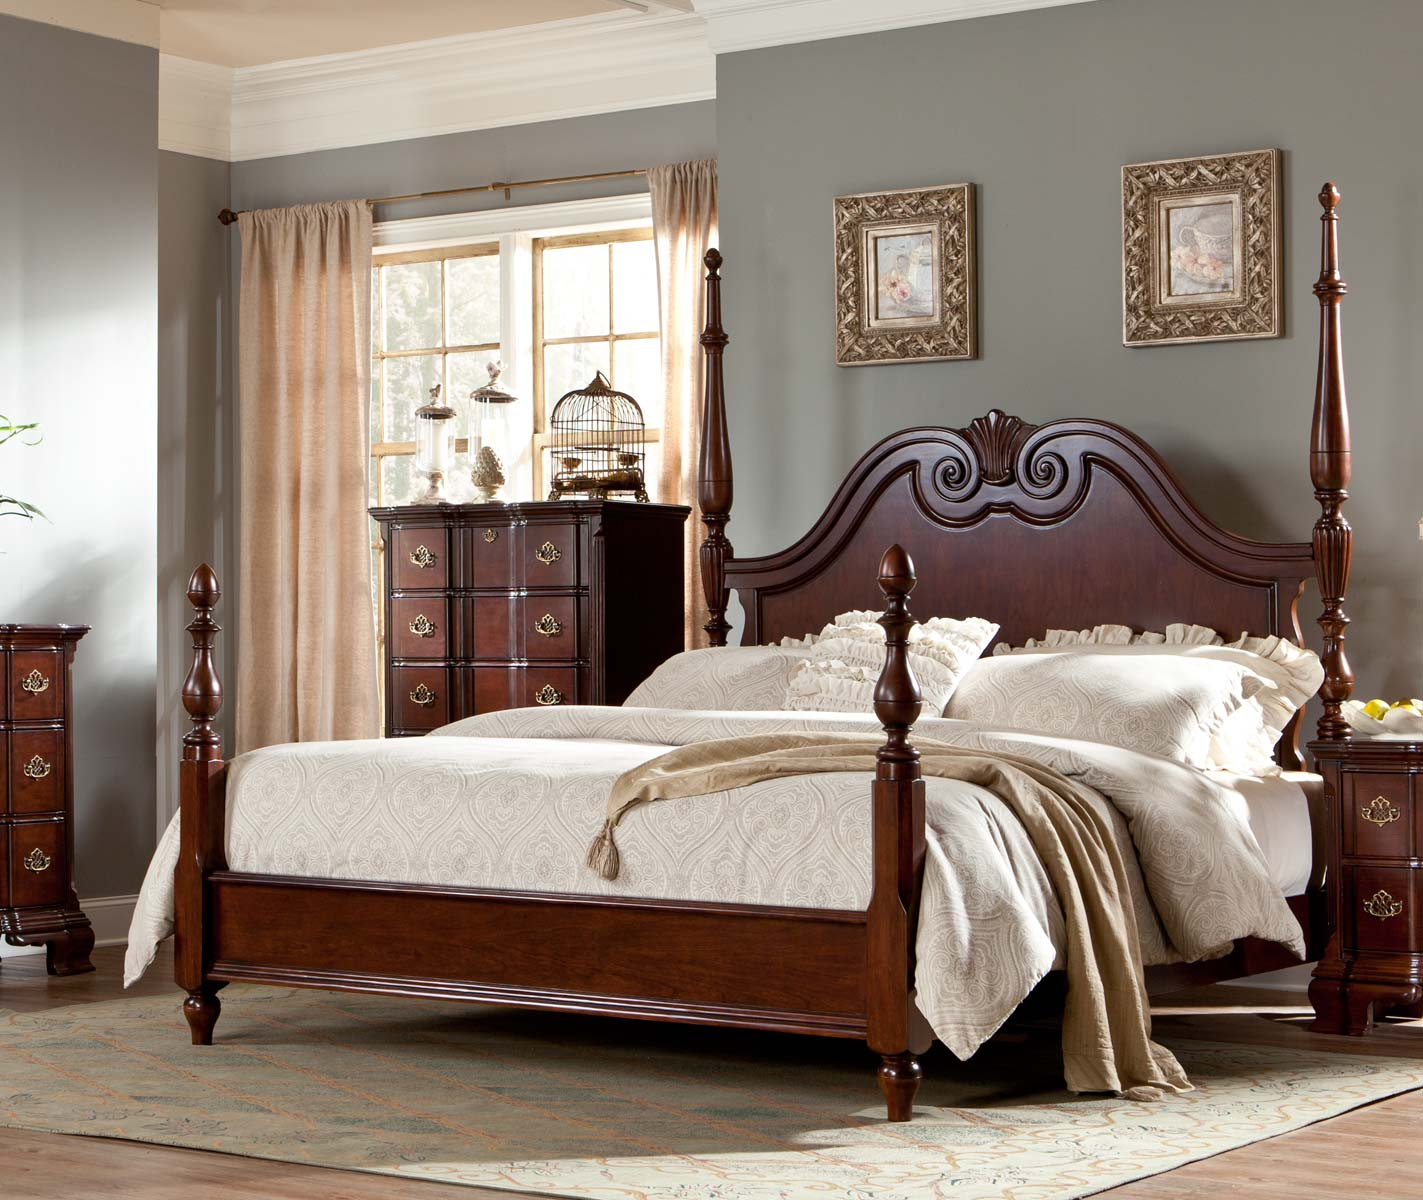 Homelegance Guilford Poster Bed - Brown Cherry